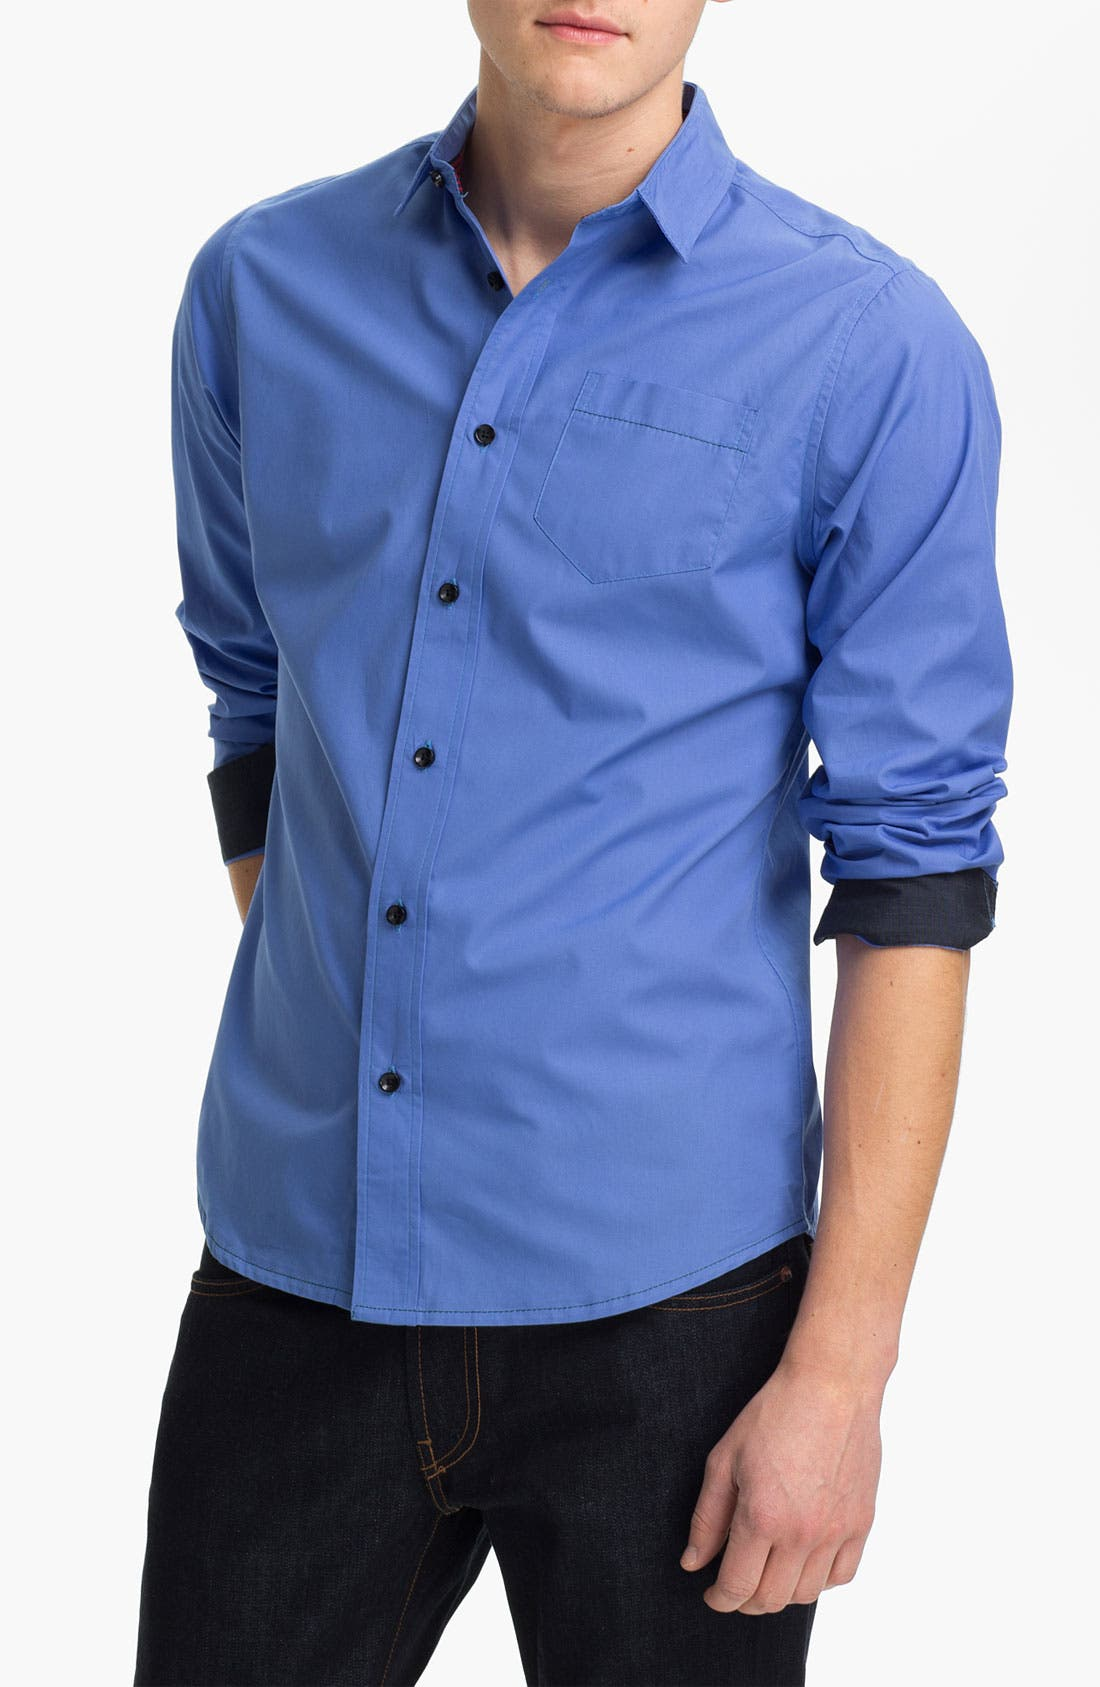 Main Image - Descendant of Thieves Woven Shirt